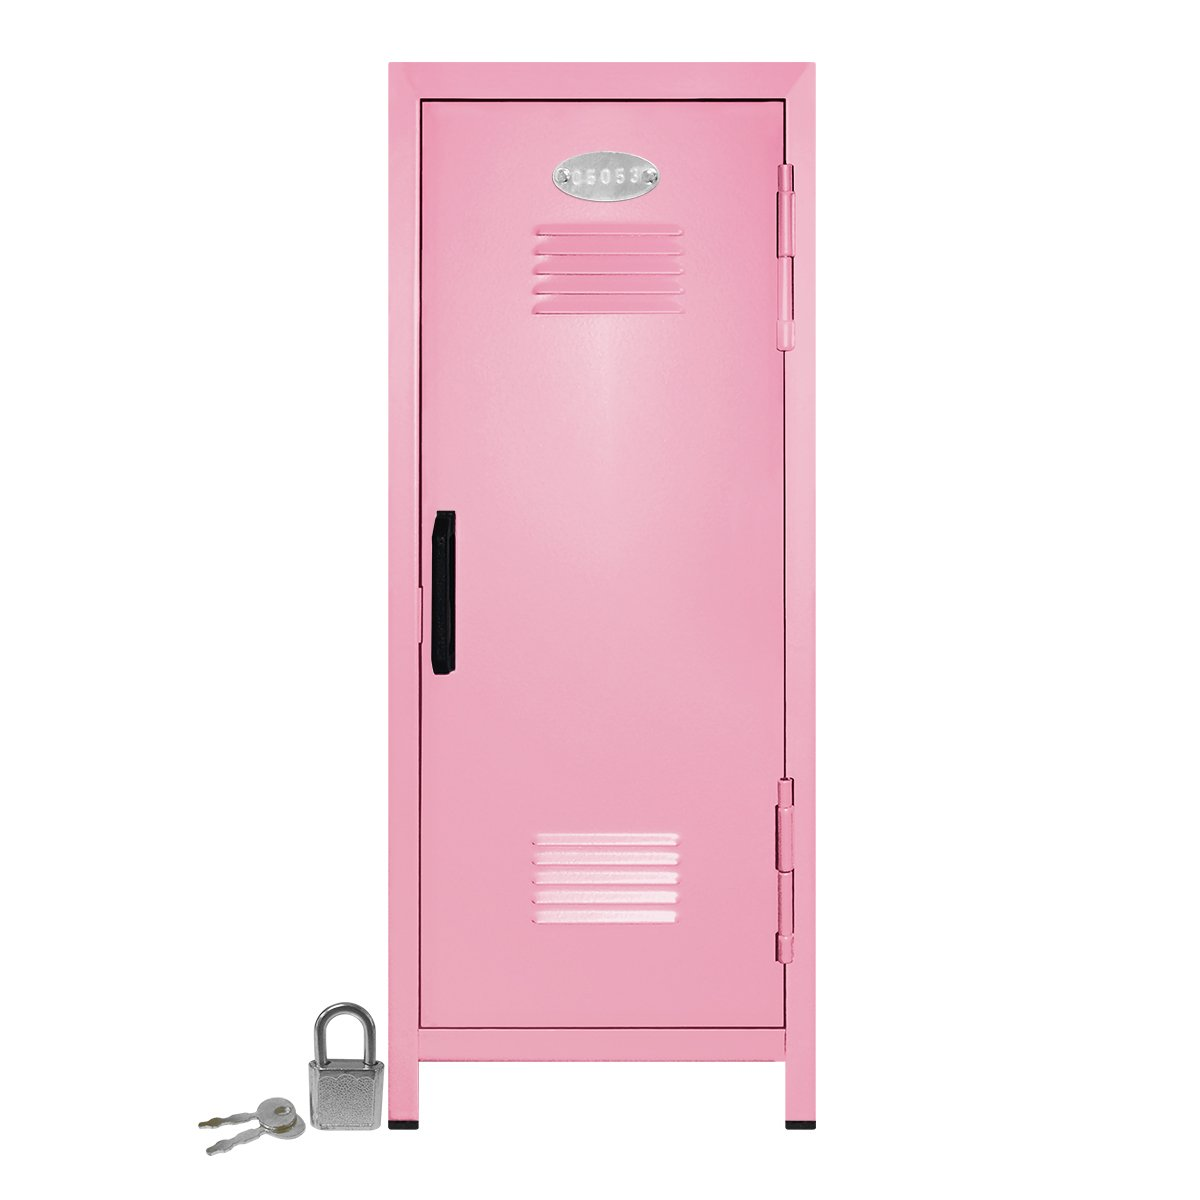 Mini Locker with Lock and Key Light Pink -10.75'' Tall x 4.125'' x 4.125''